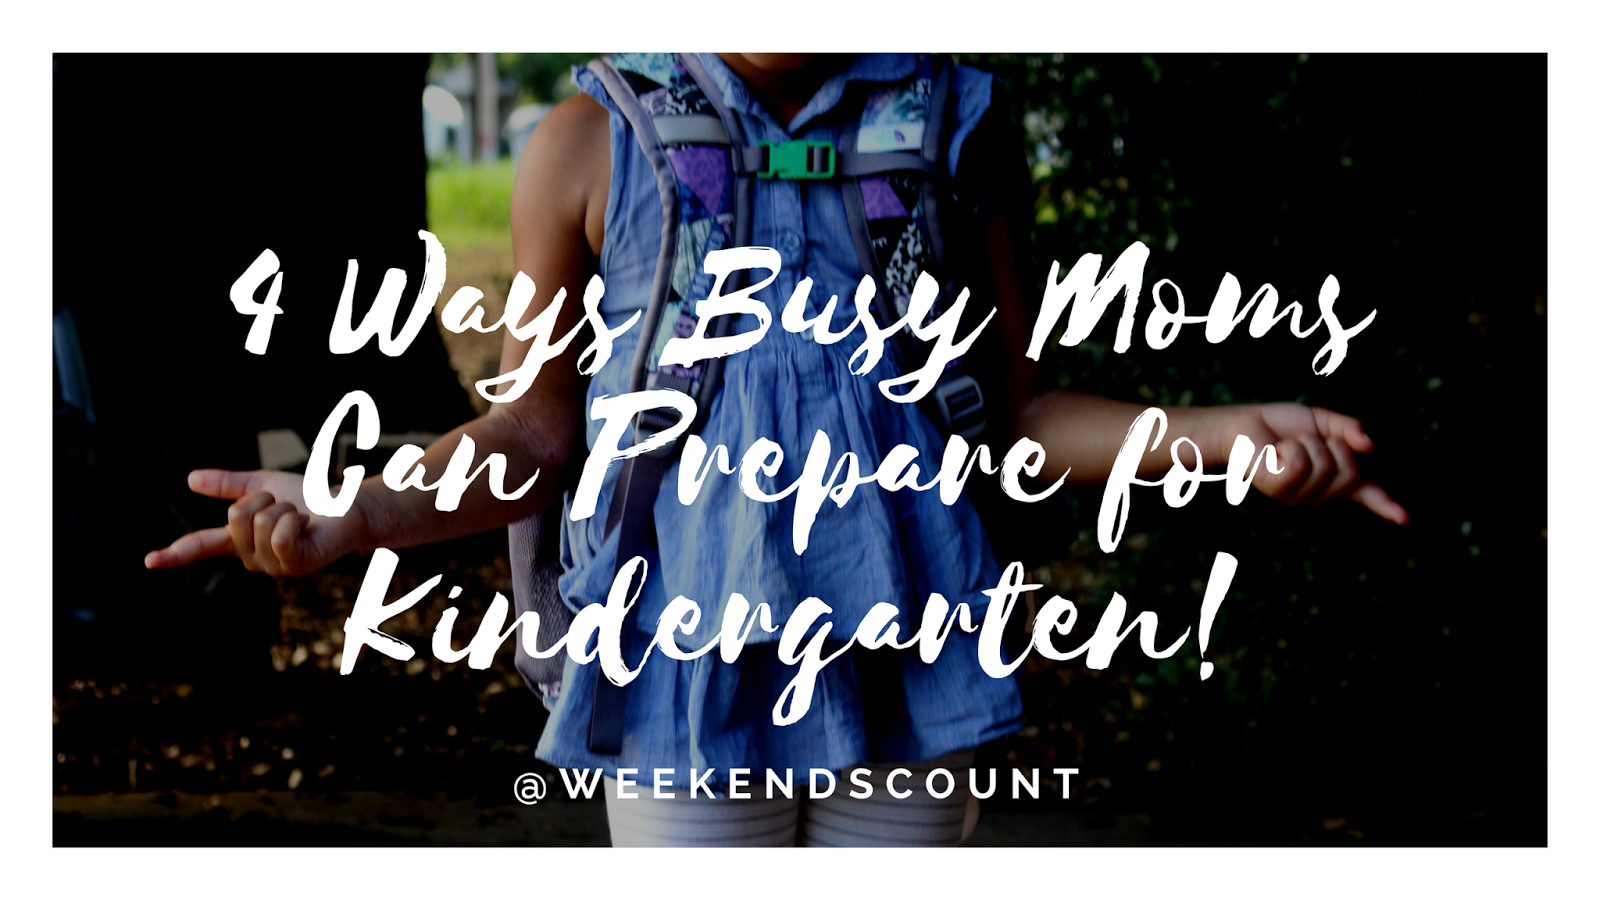 Weekends Count! - Fun Weekend Activities for Busy Frugal Families ...